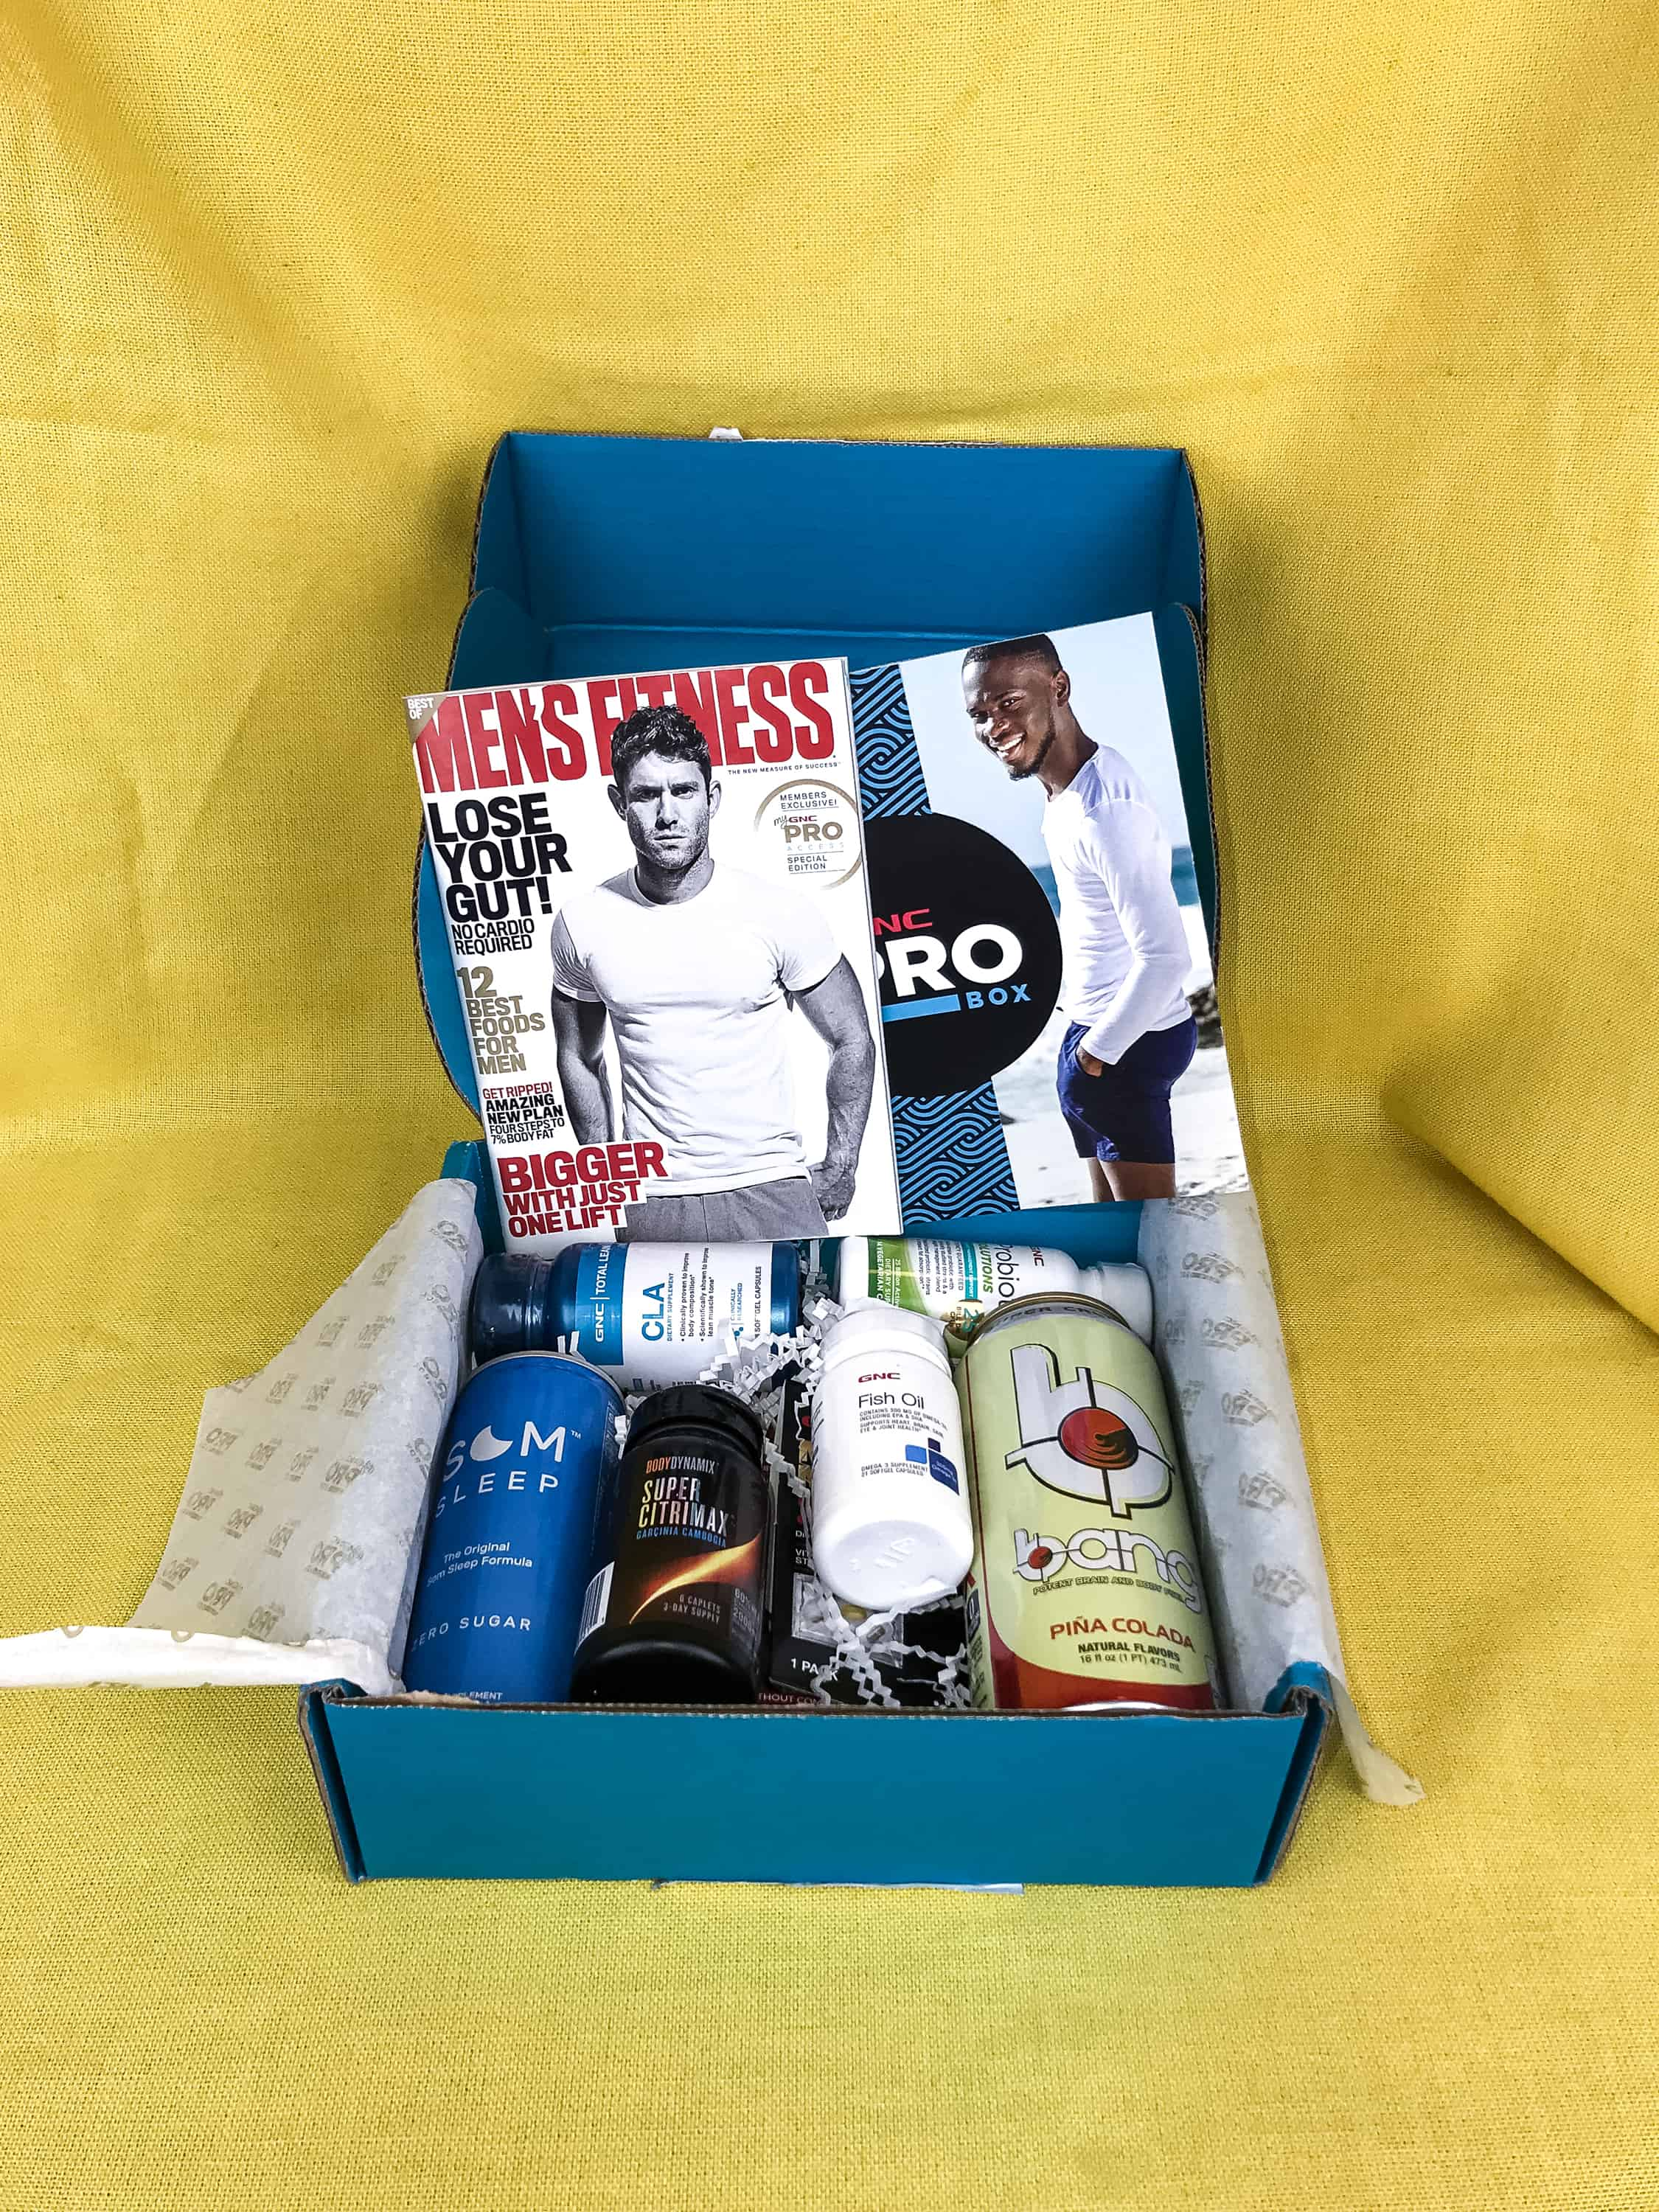 My Gnc Pro Box August 2018 Subscription Box Review Men